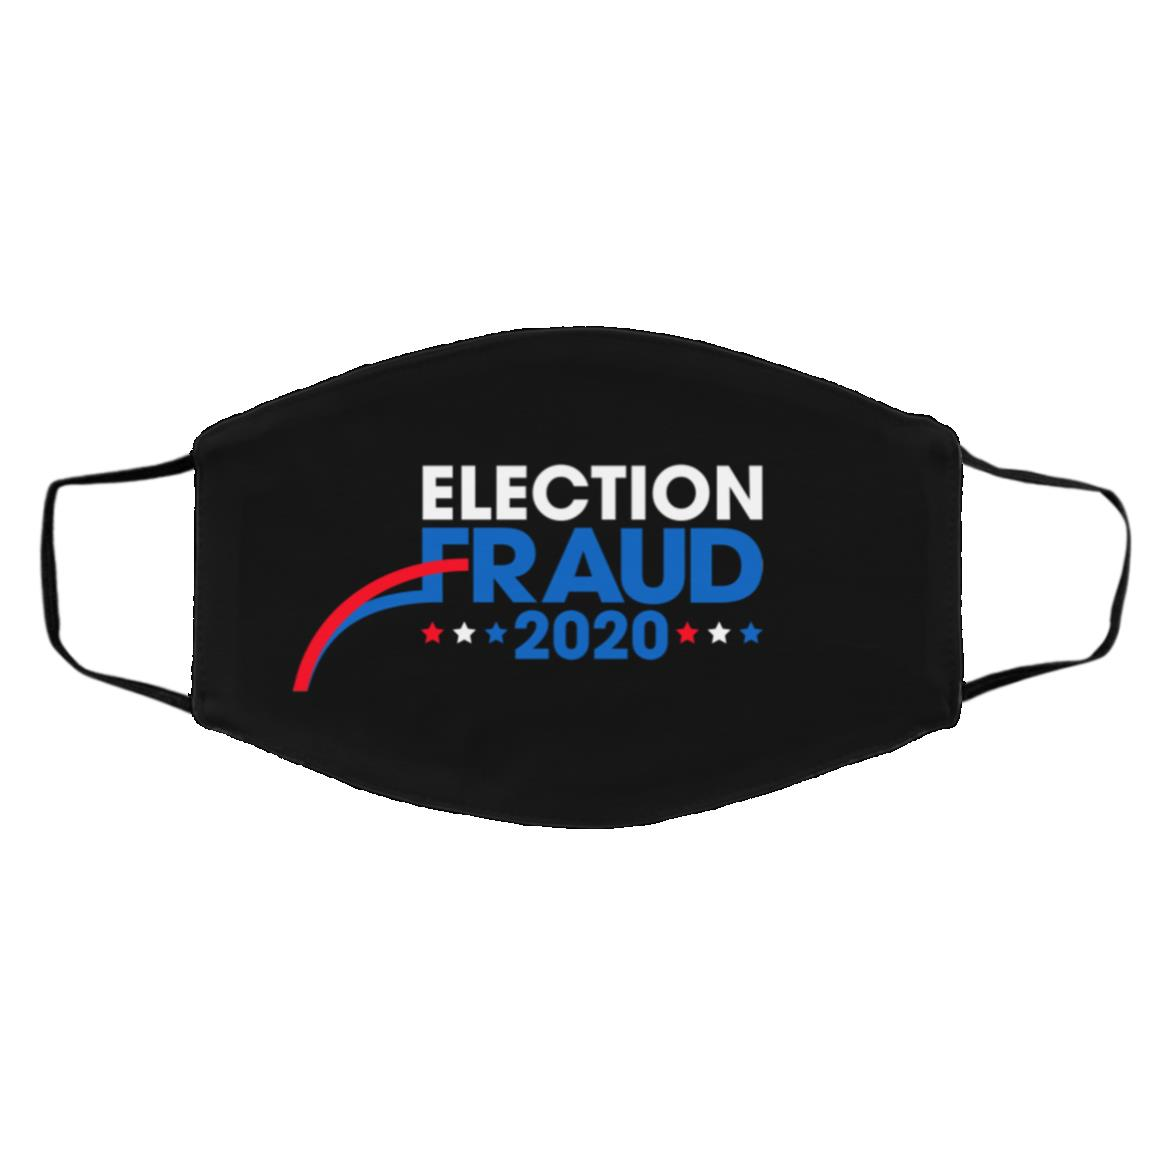 Election Fraud 2020 Face Mask Cover, Black, Cloth Face Cover – Medium/Large